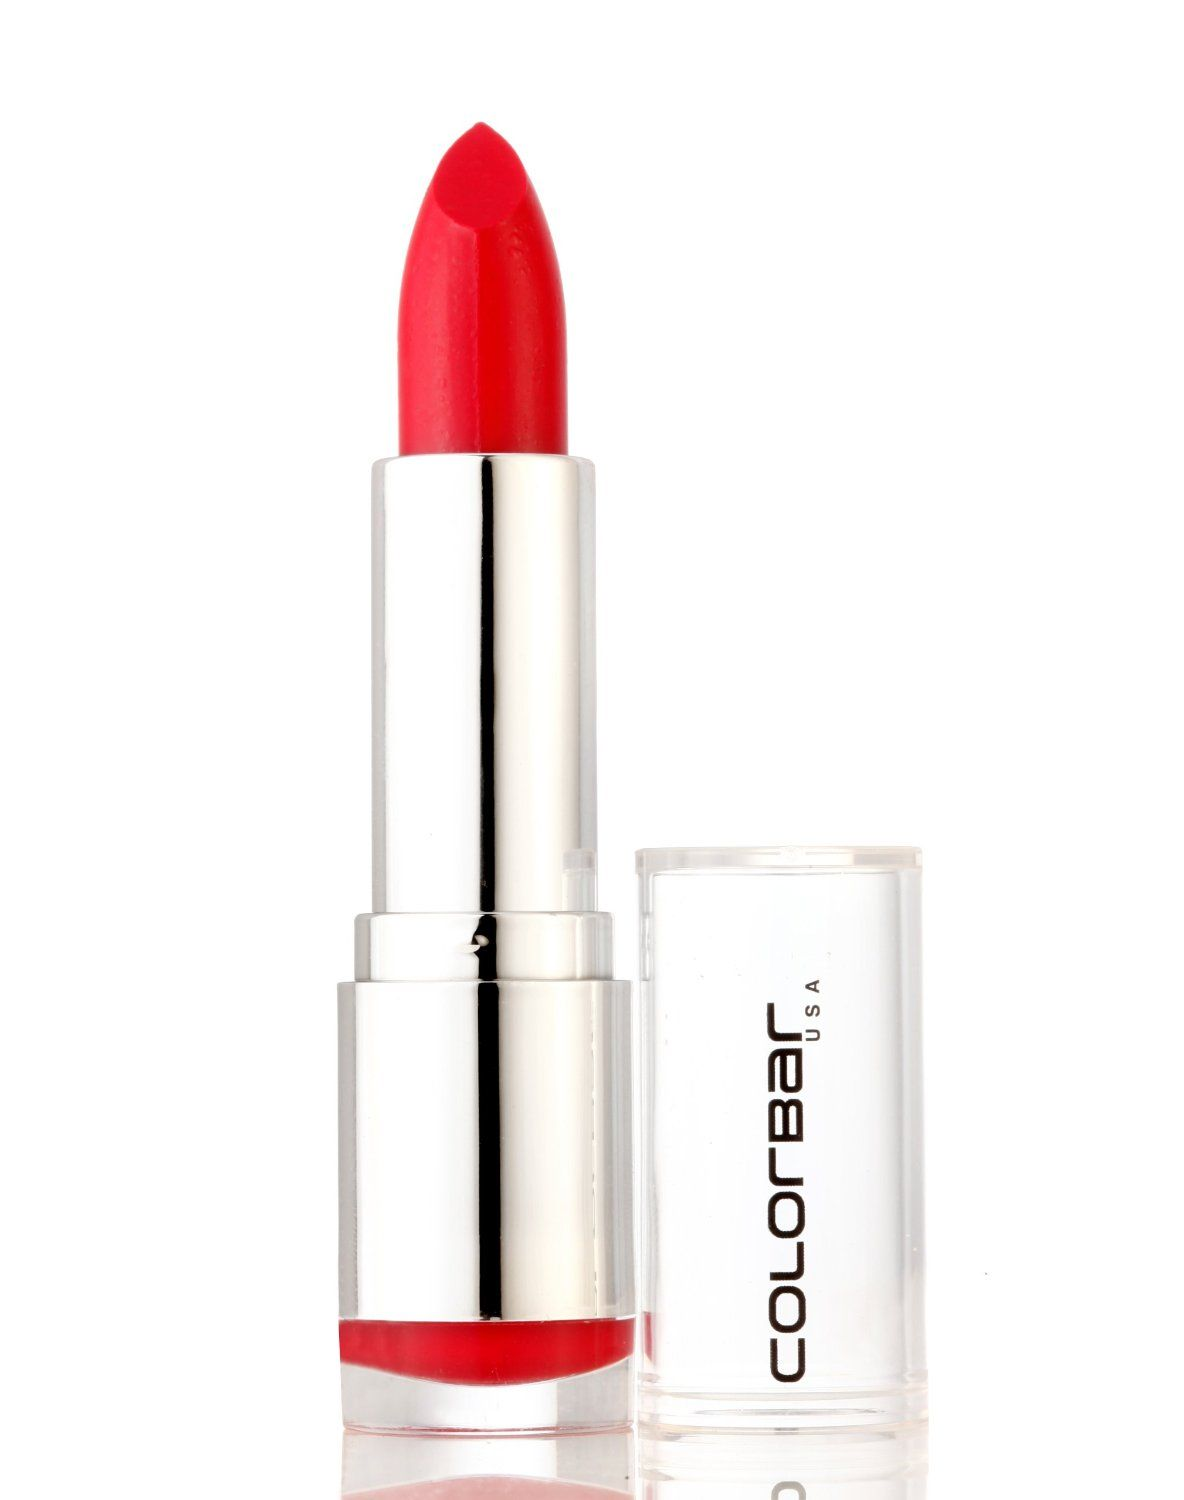 LOreal Paris Collection Star Red Pure Scarleto & Pure